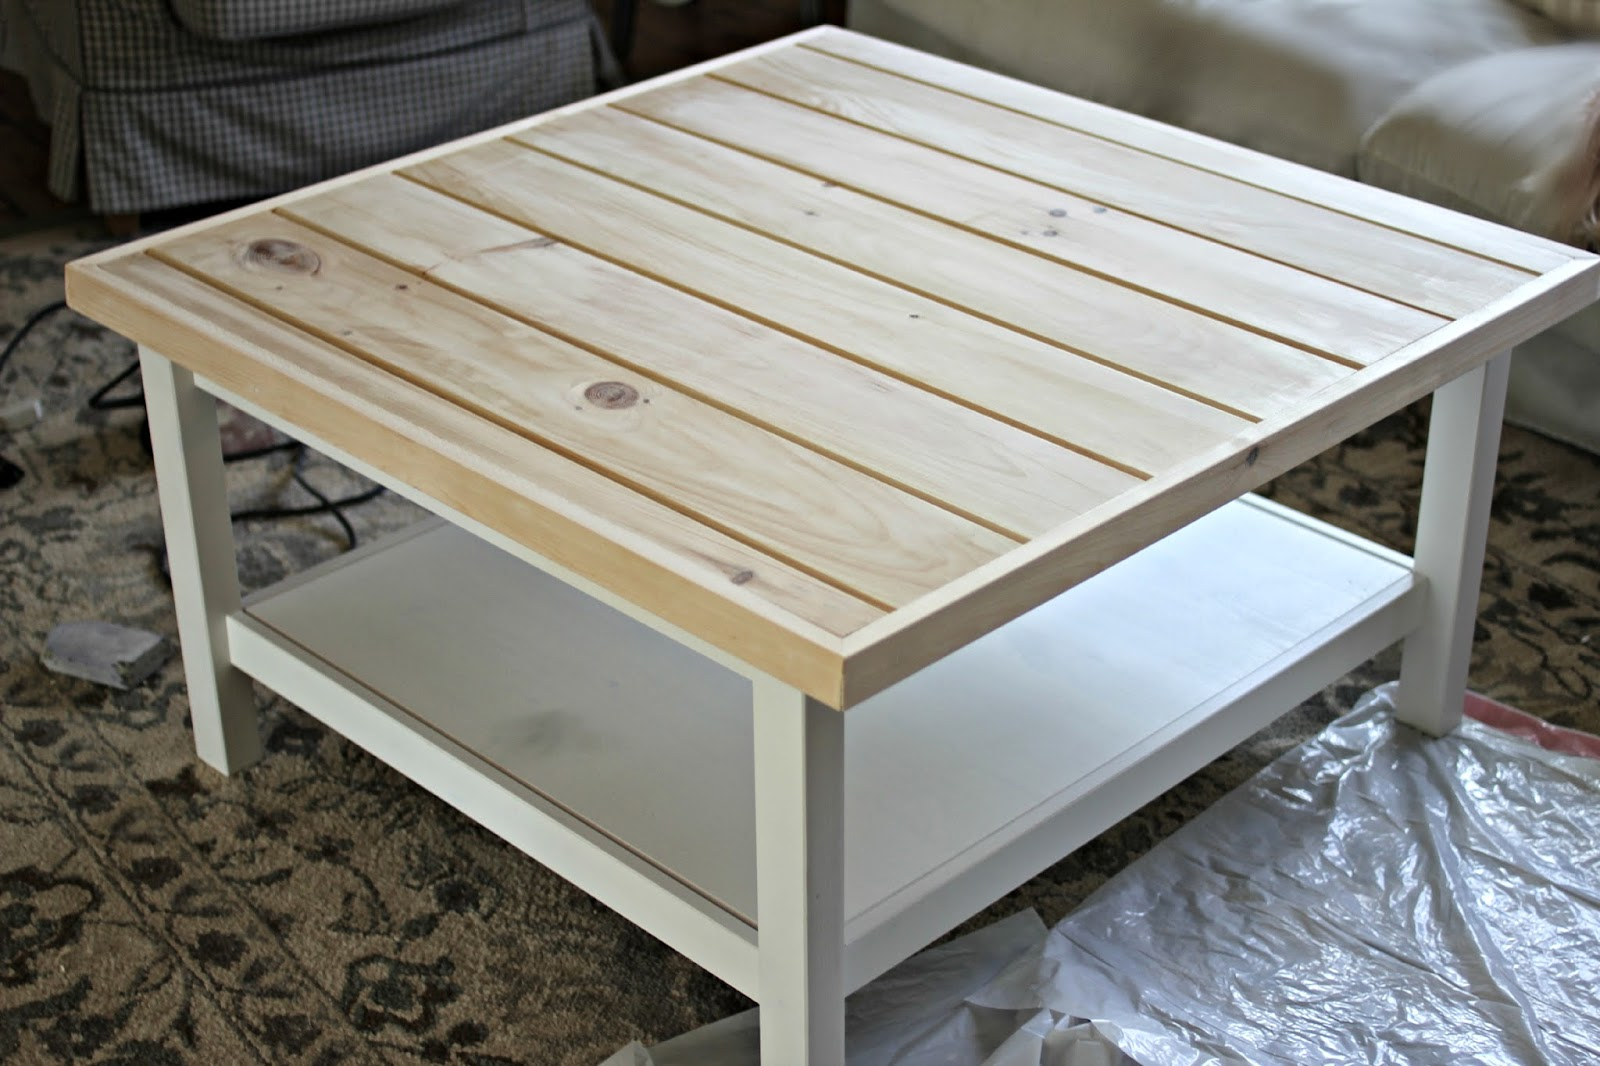 Golden boys and me coffee table ikea hack - Table basse de salon ikea ...